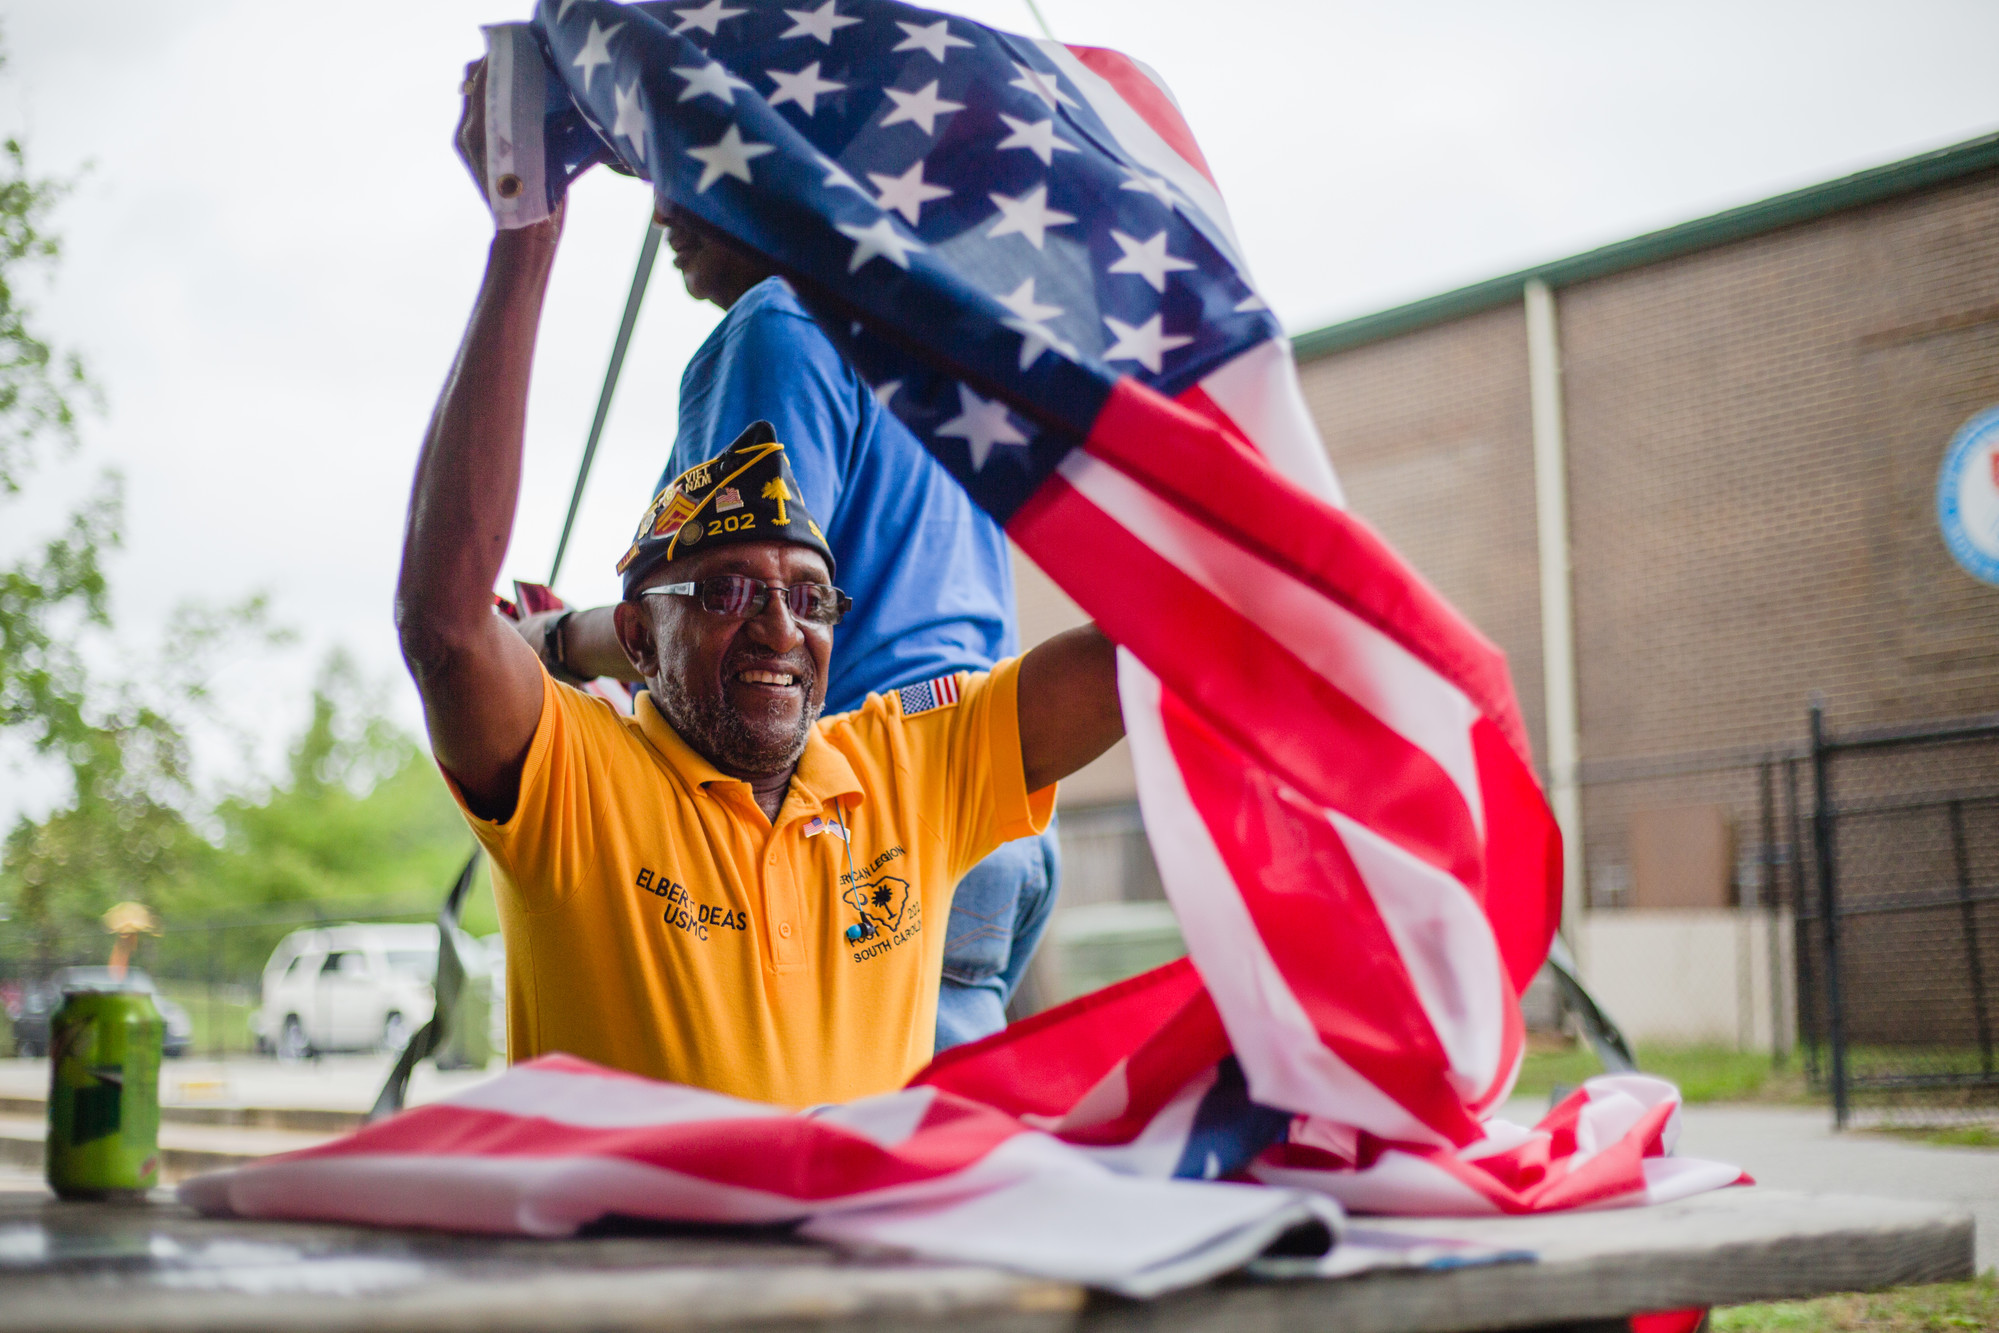 Retired Marine Corp. Elbert Deas helps fold flags at South Sumter Park after the annual Memorial Day Fish Fry.